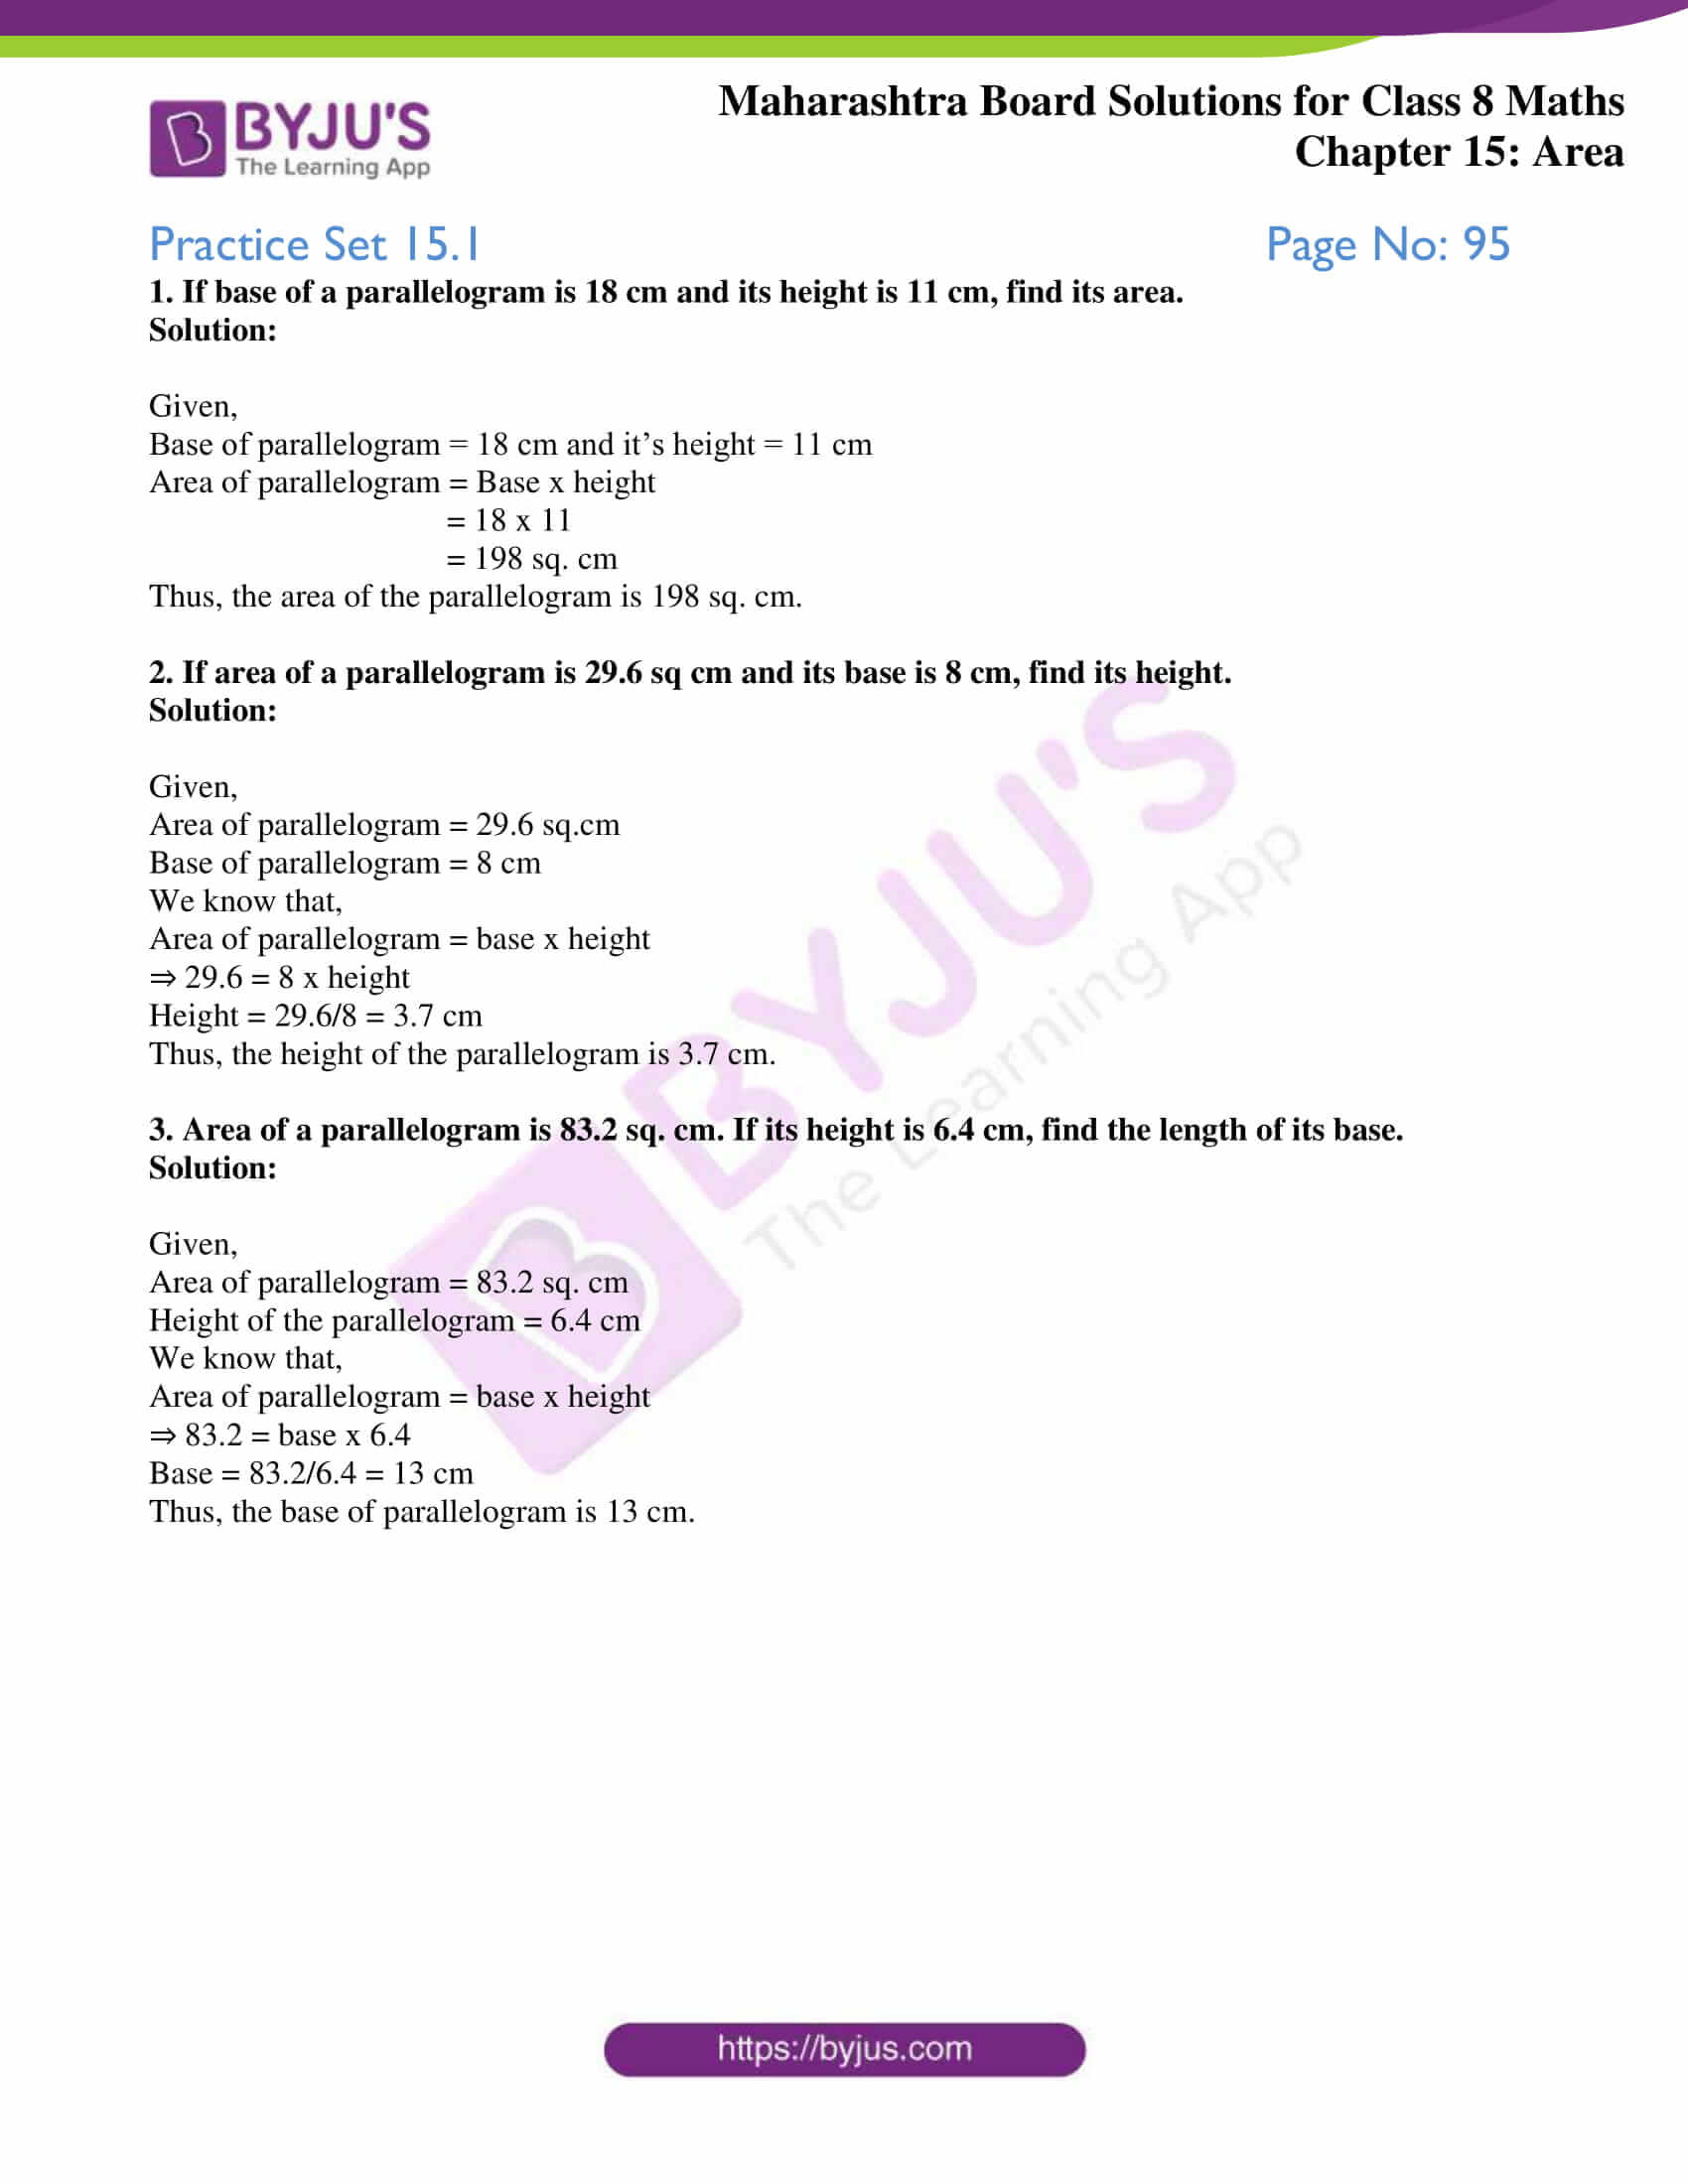 msbshse sol for class 8 maths chapter 15 01